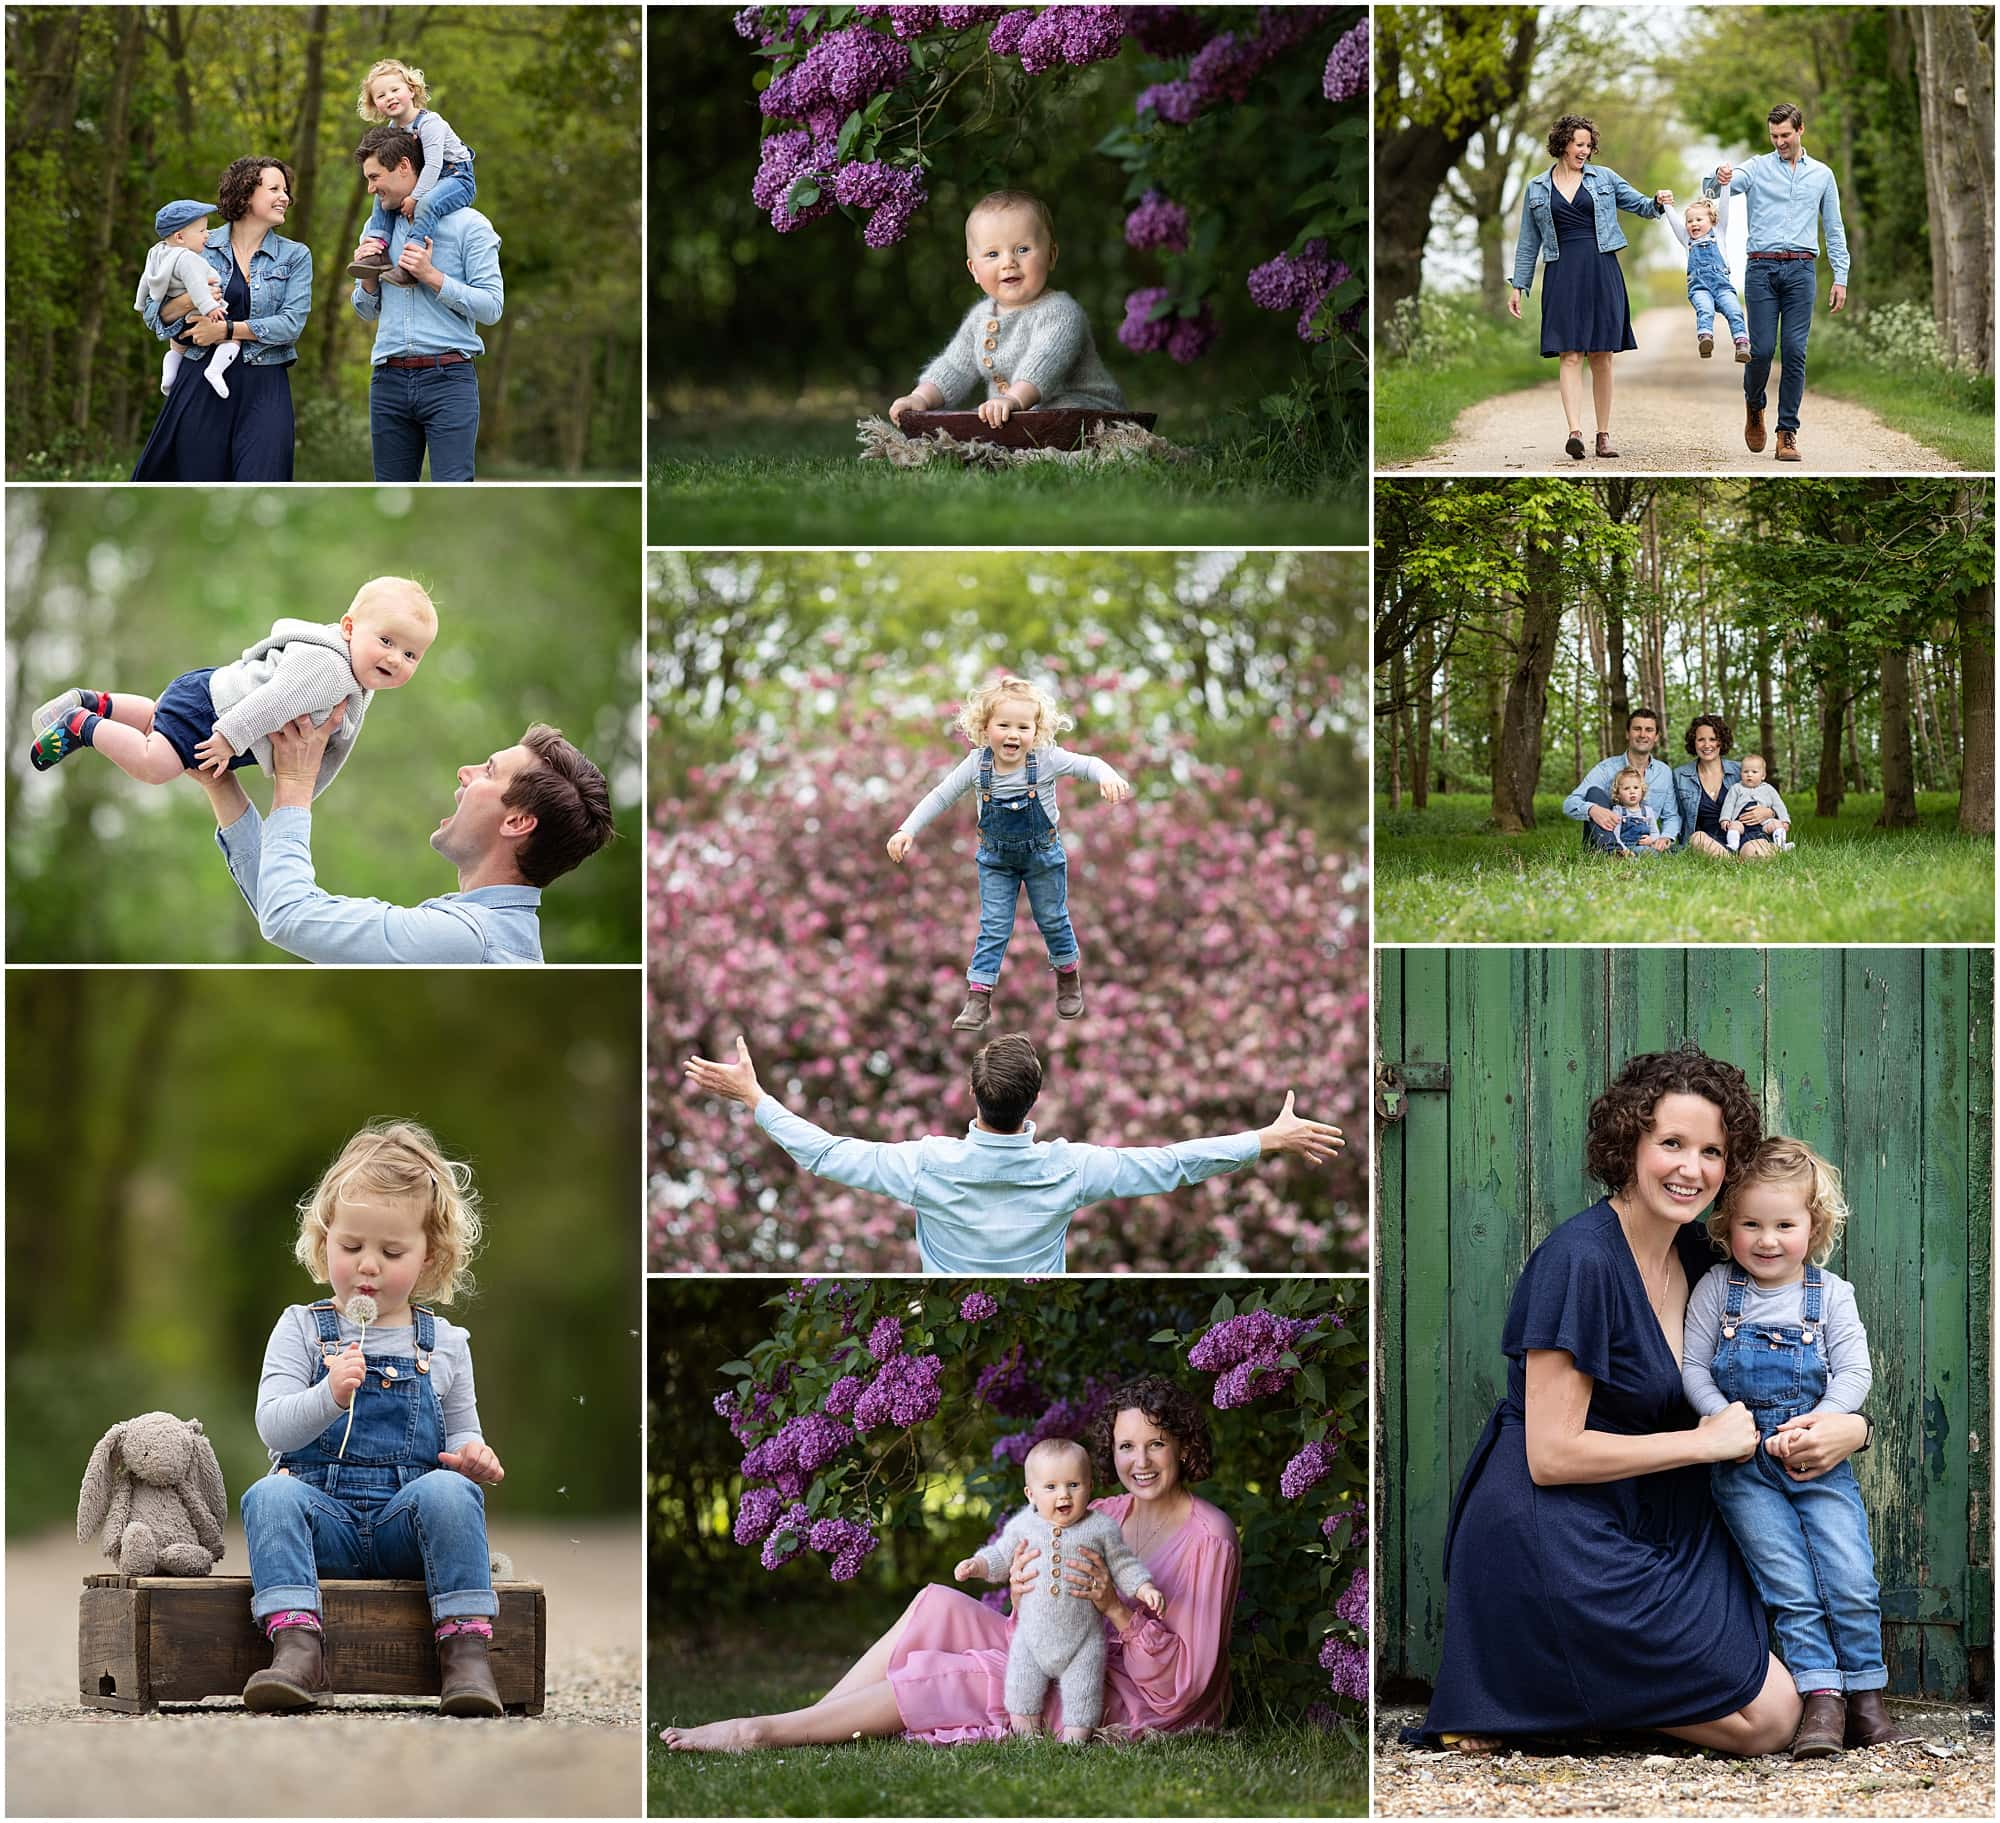 Collage of Family Photographs from a family photoshoot in suffolk